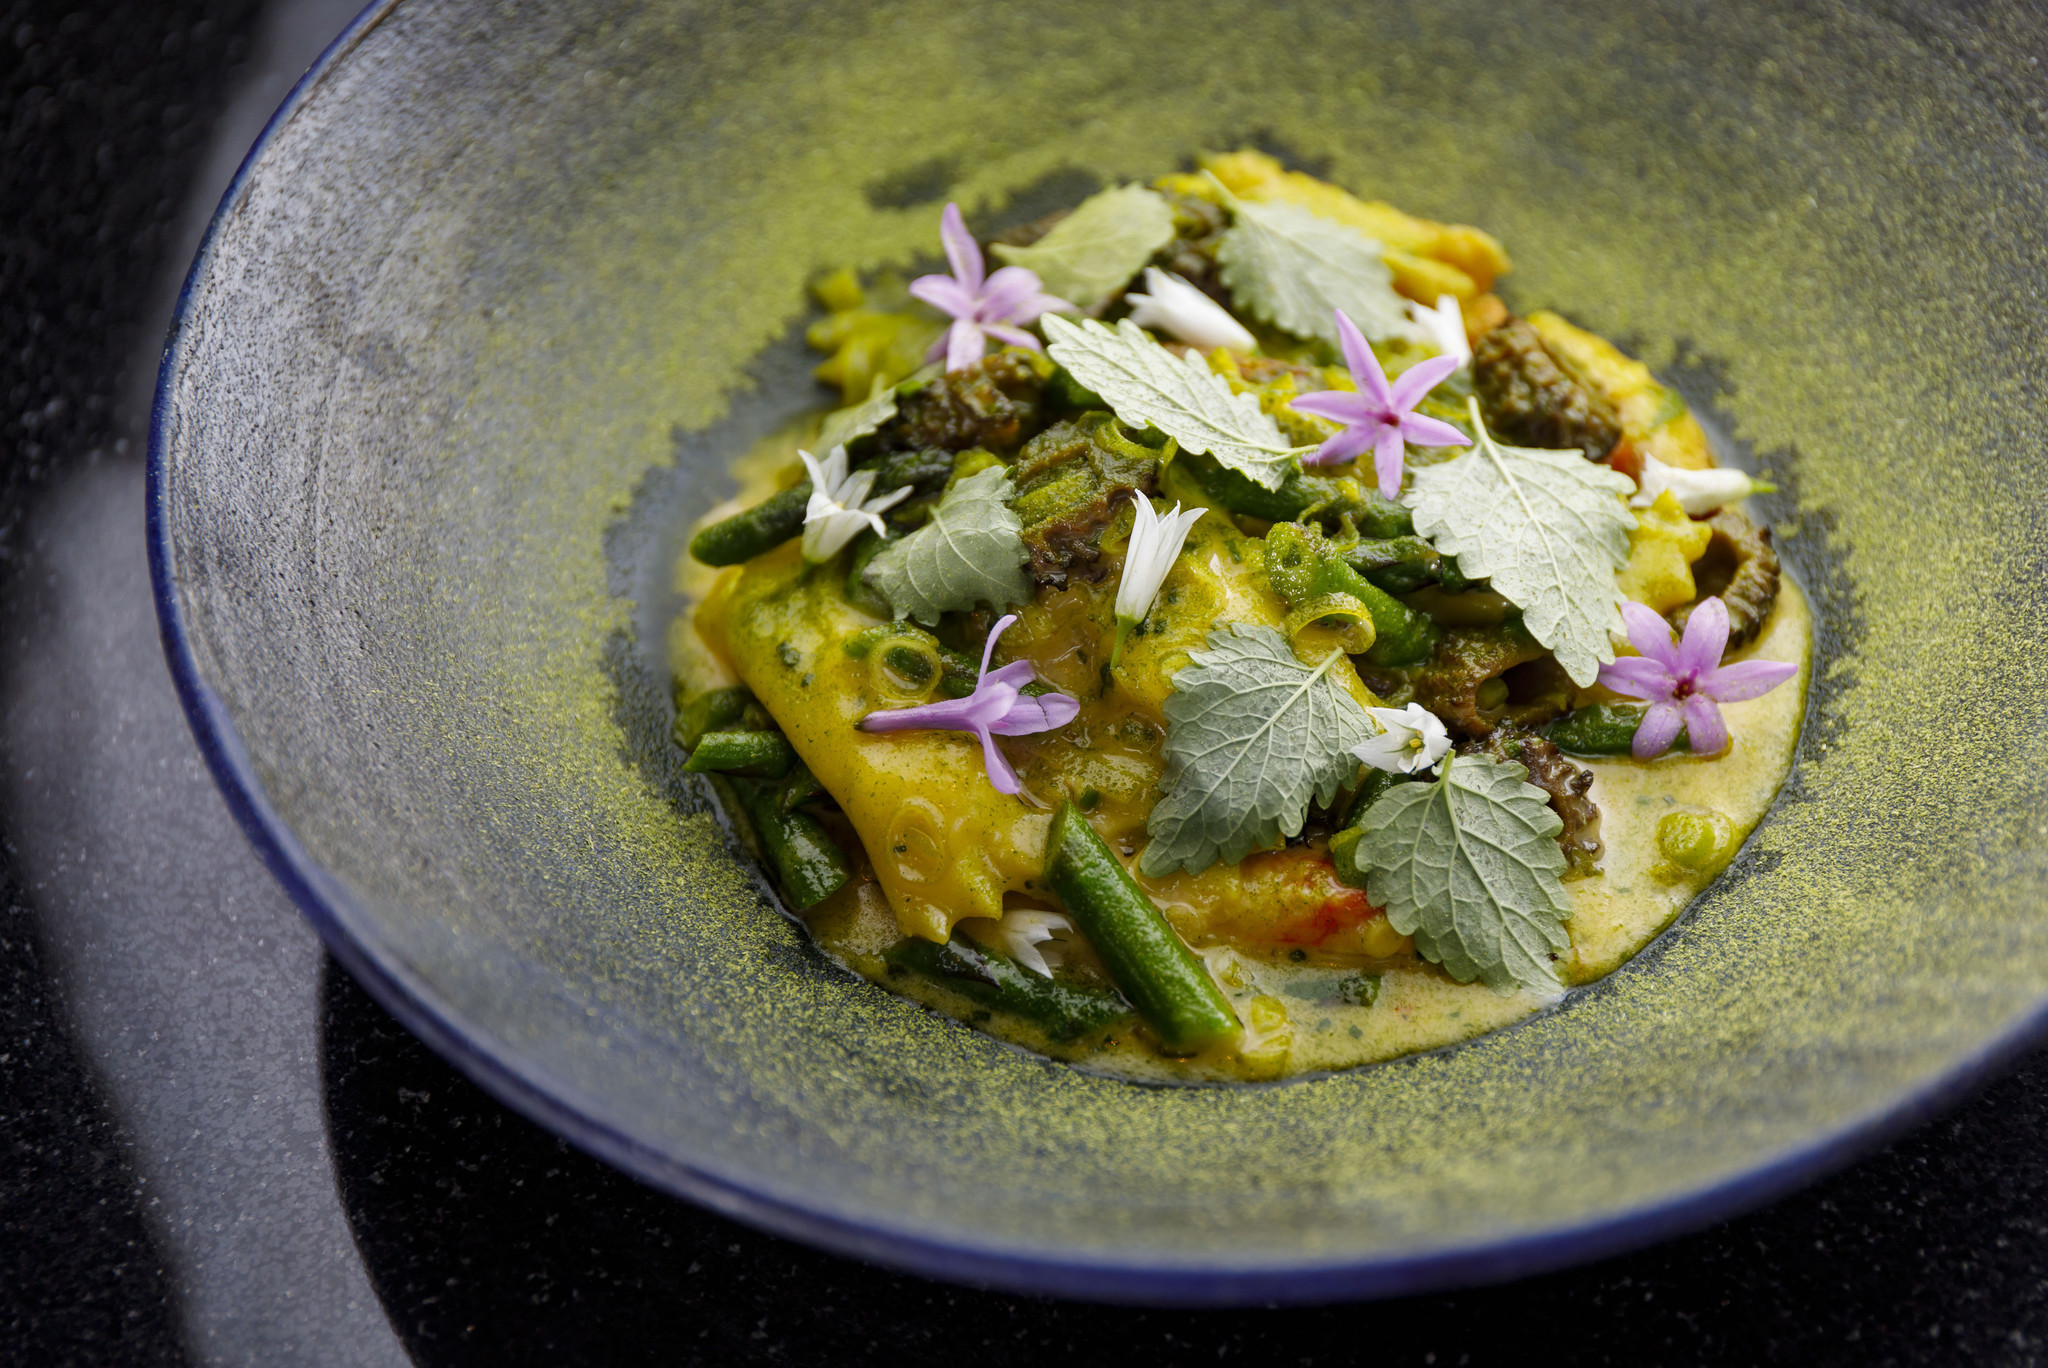 Review: Entente dishing up same great food in a spiffy new home